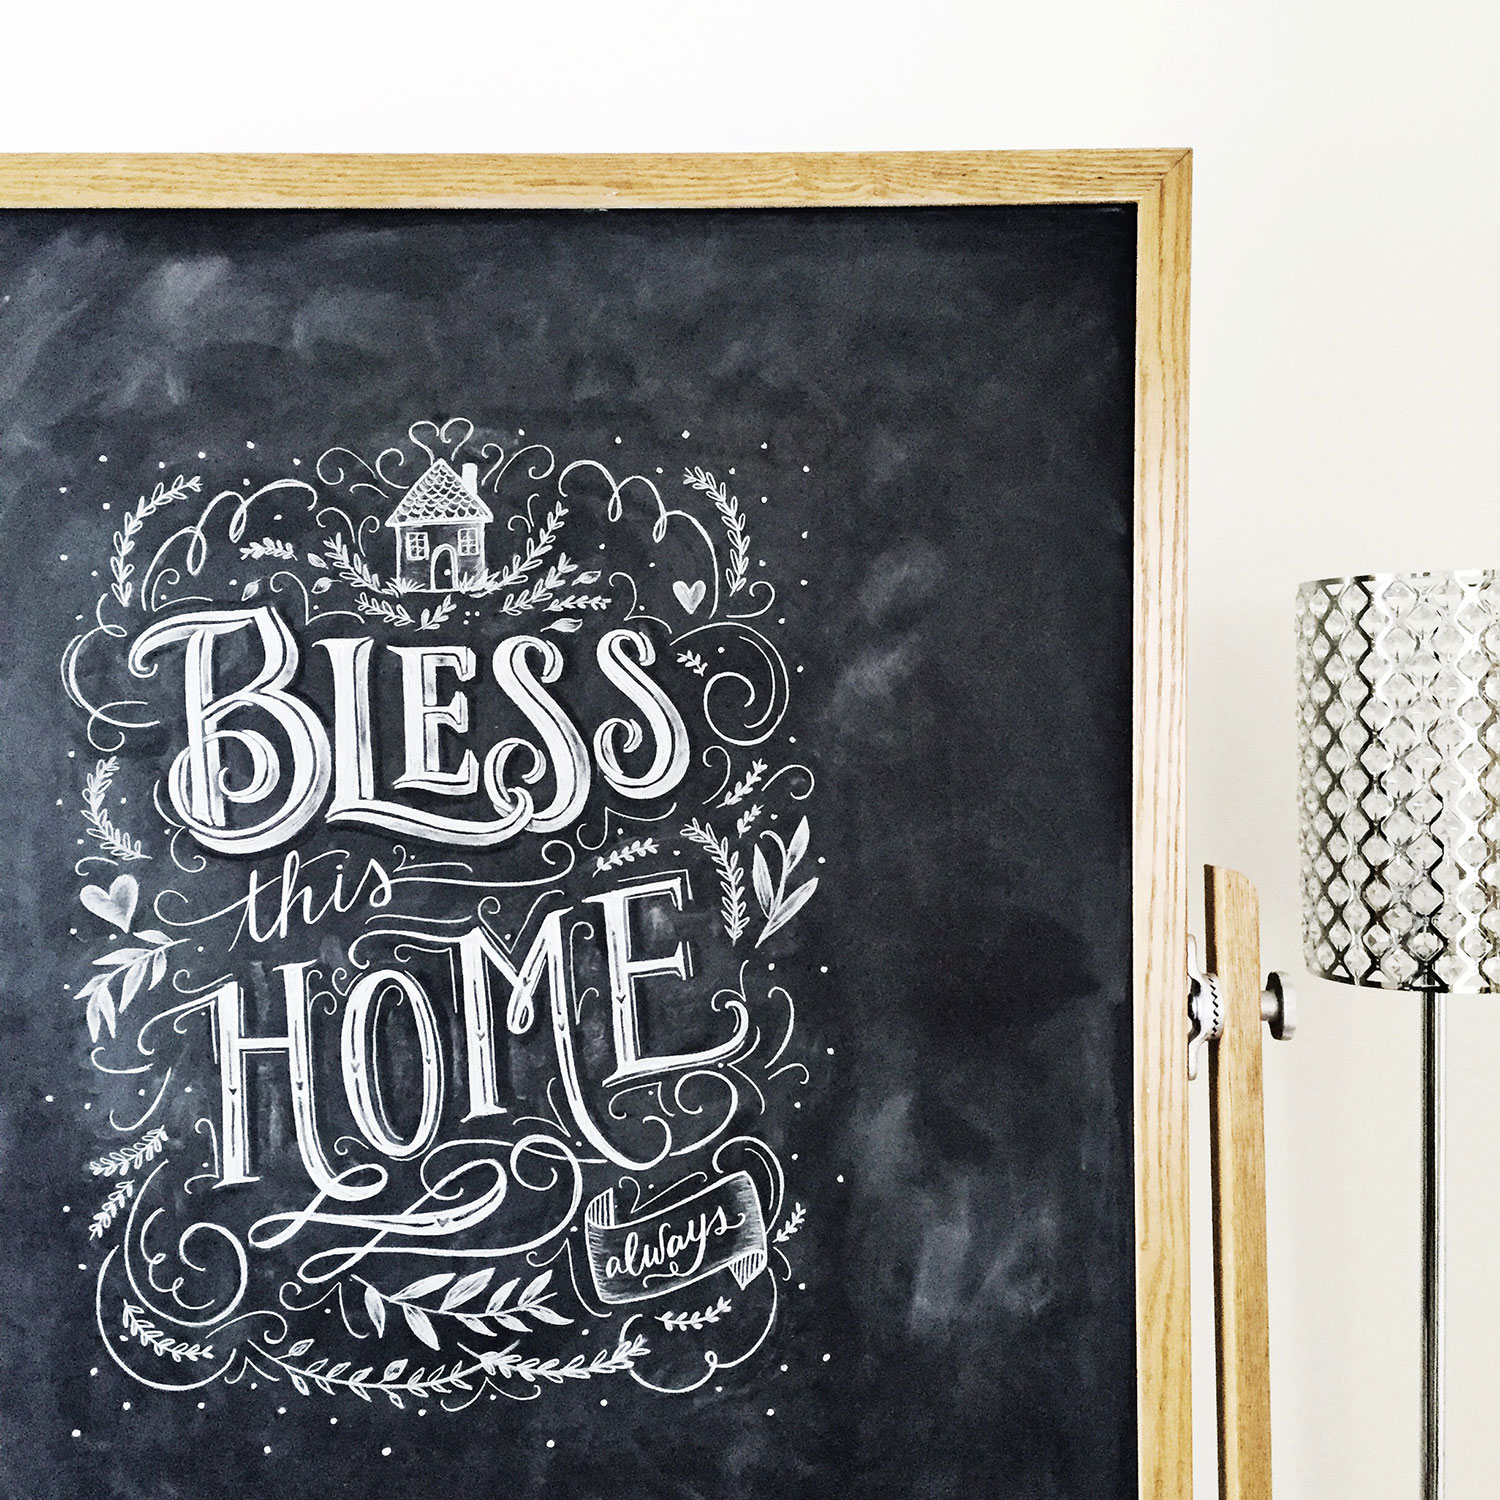 Bless This Home Chalkboard Art by Valerie McKeehan of Lily & Val